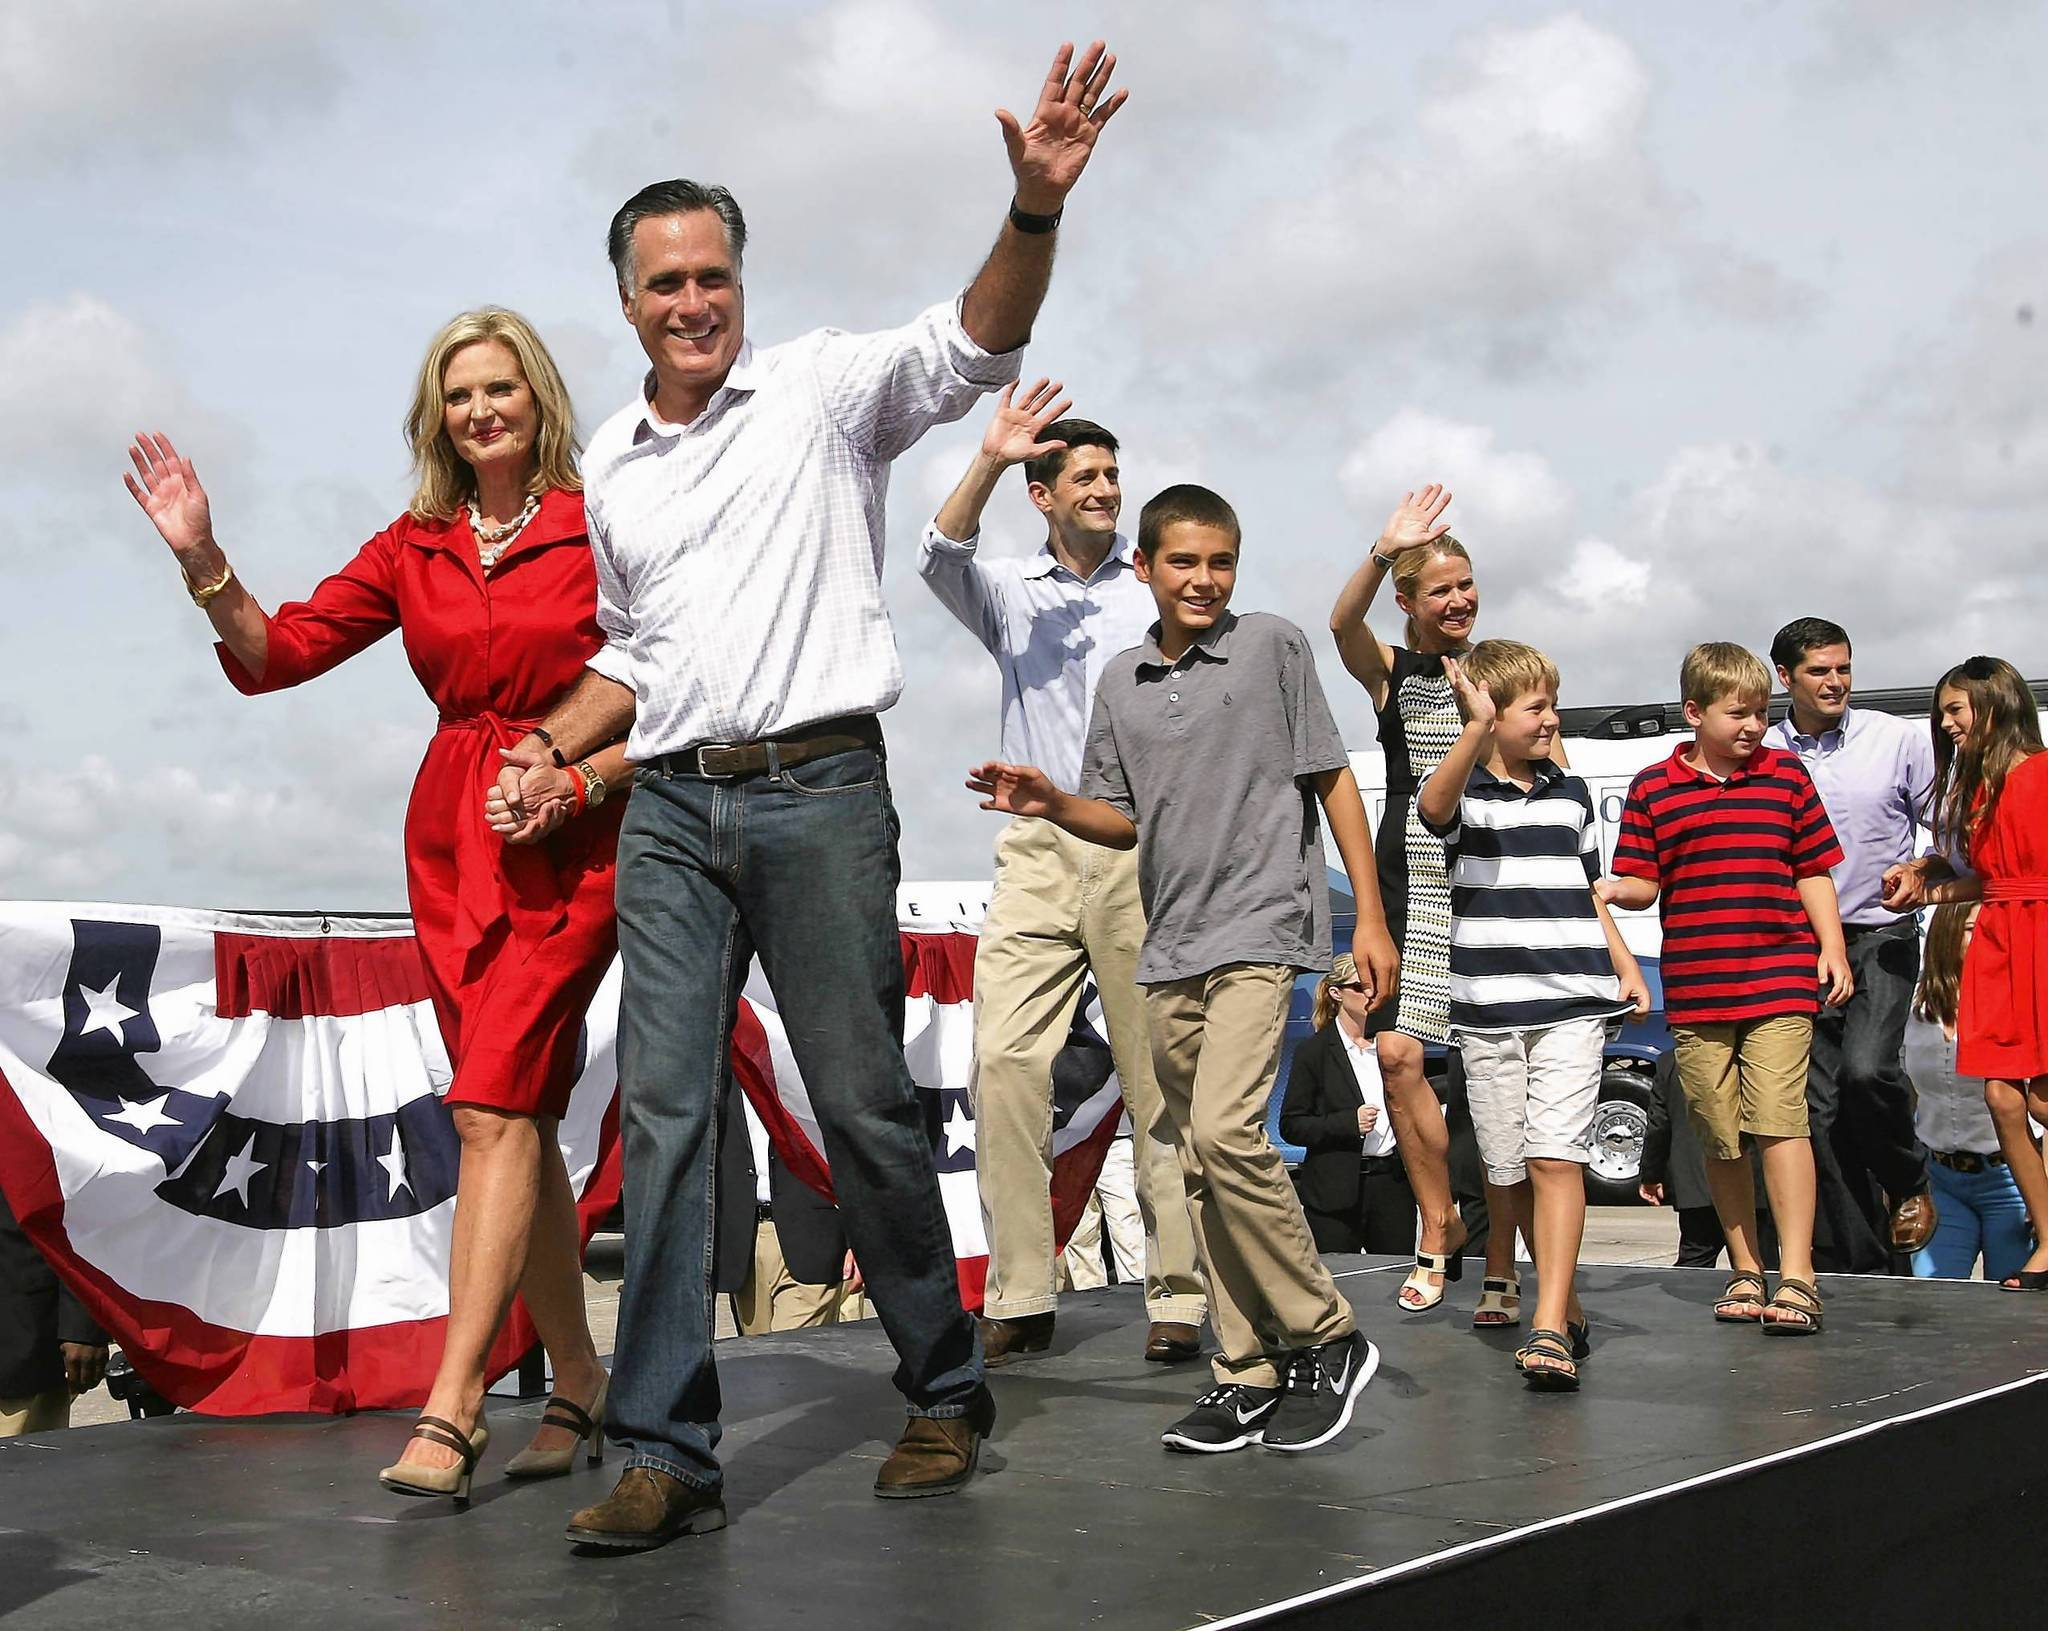 The Romneys and Ryans wave to cheering supporters at the end of a send-off rally on the tarmac at the airport in Lakeland, Fla., Friday, August 31, 2012.